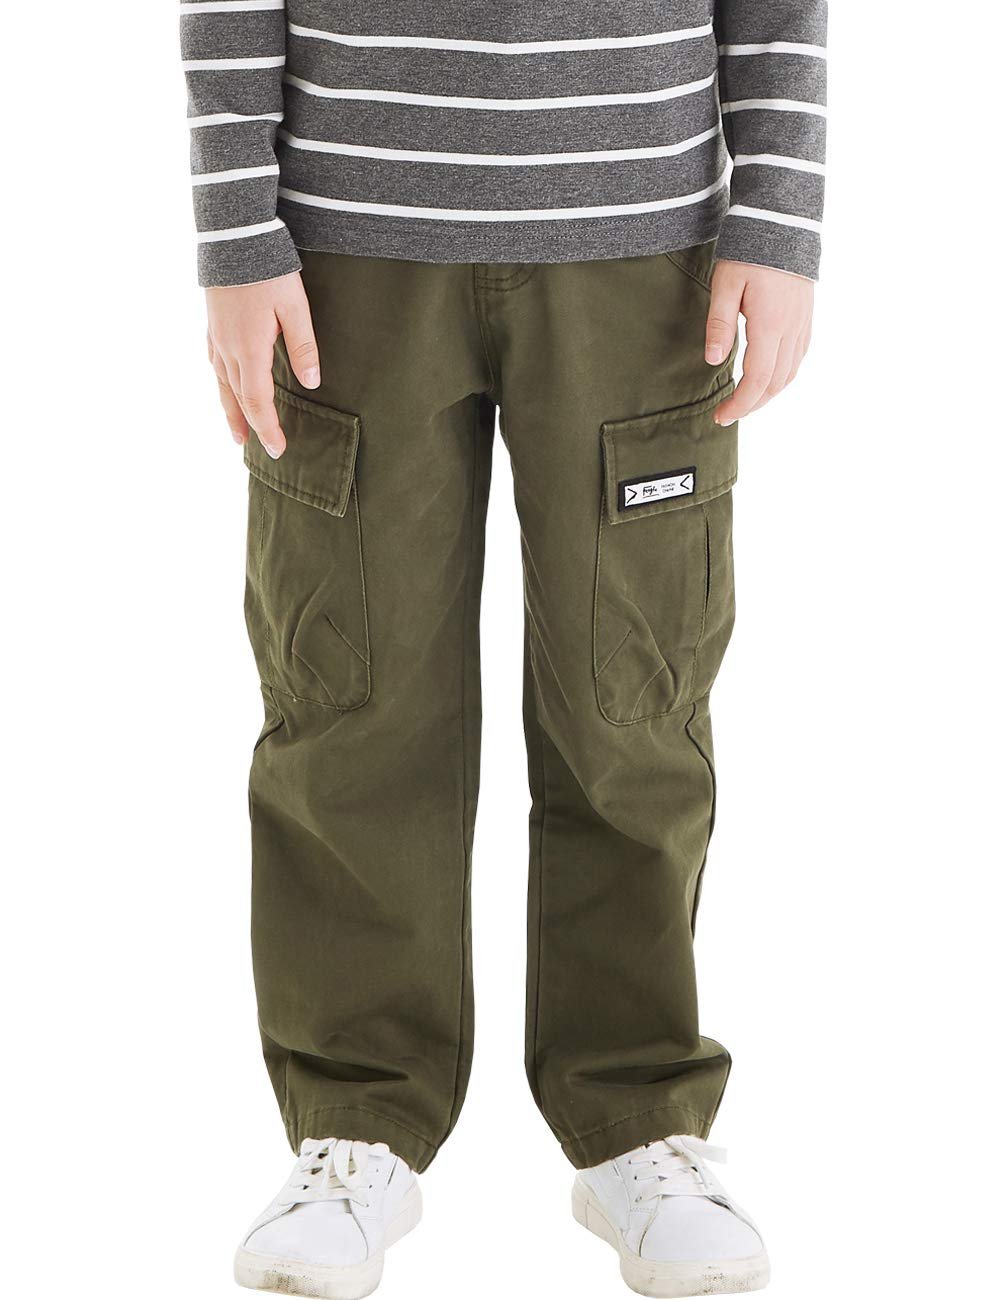 BYCR Boys' 100% Cotton Multi Pocket Chino Cargo Pants for Kids Size 5-18 (Army Green, 140 (US Size 8)) by BYCR